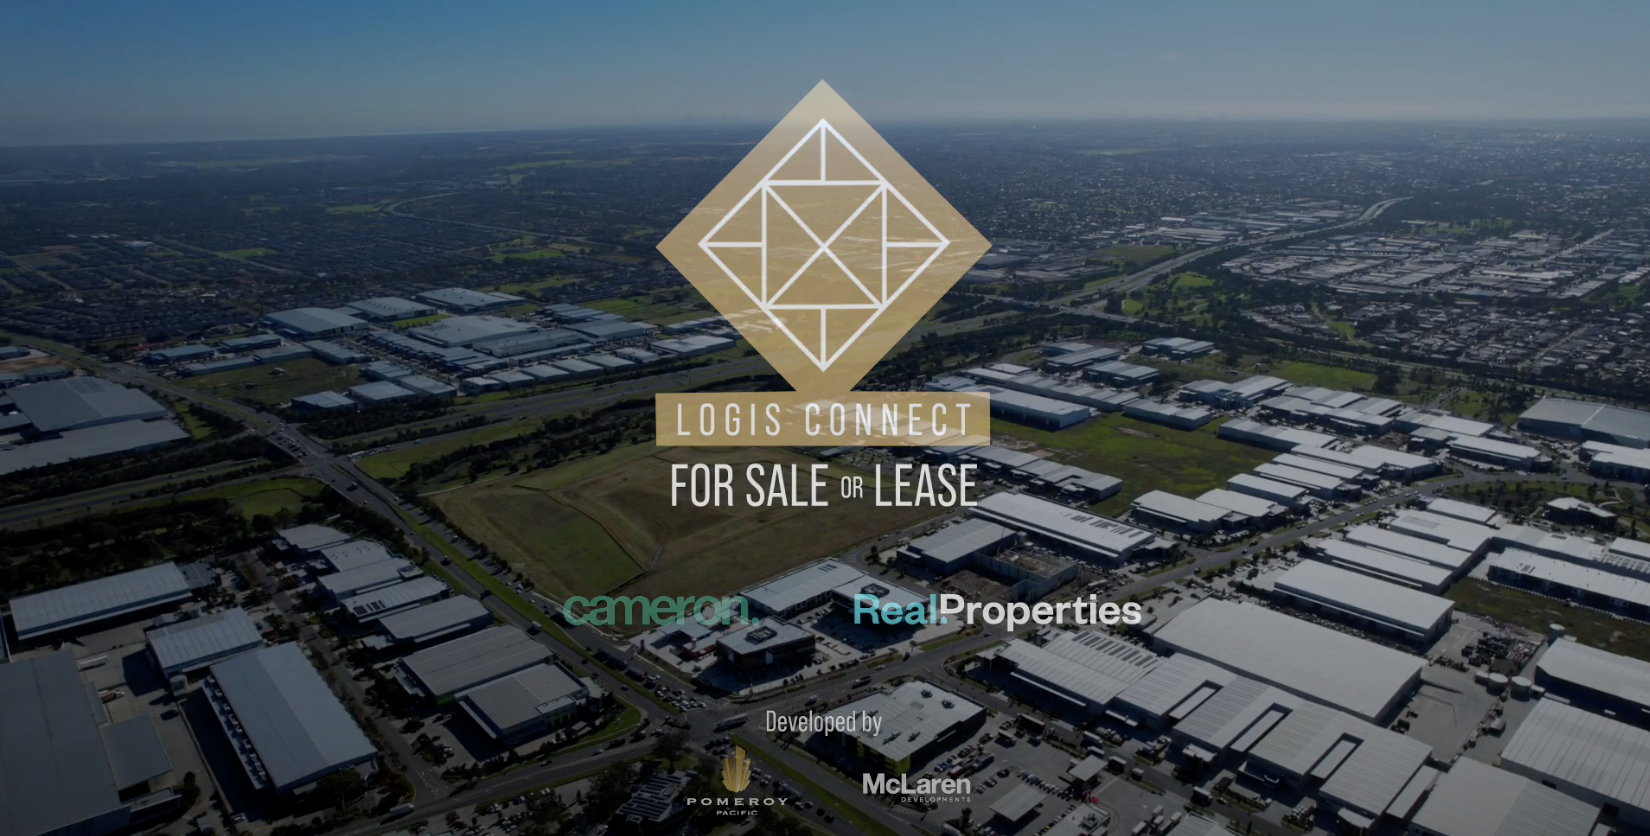 Cameron Industrial - Real Properties | Logis Connect, Dandenong